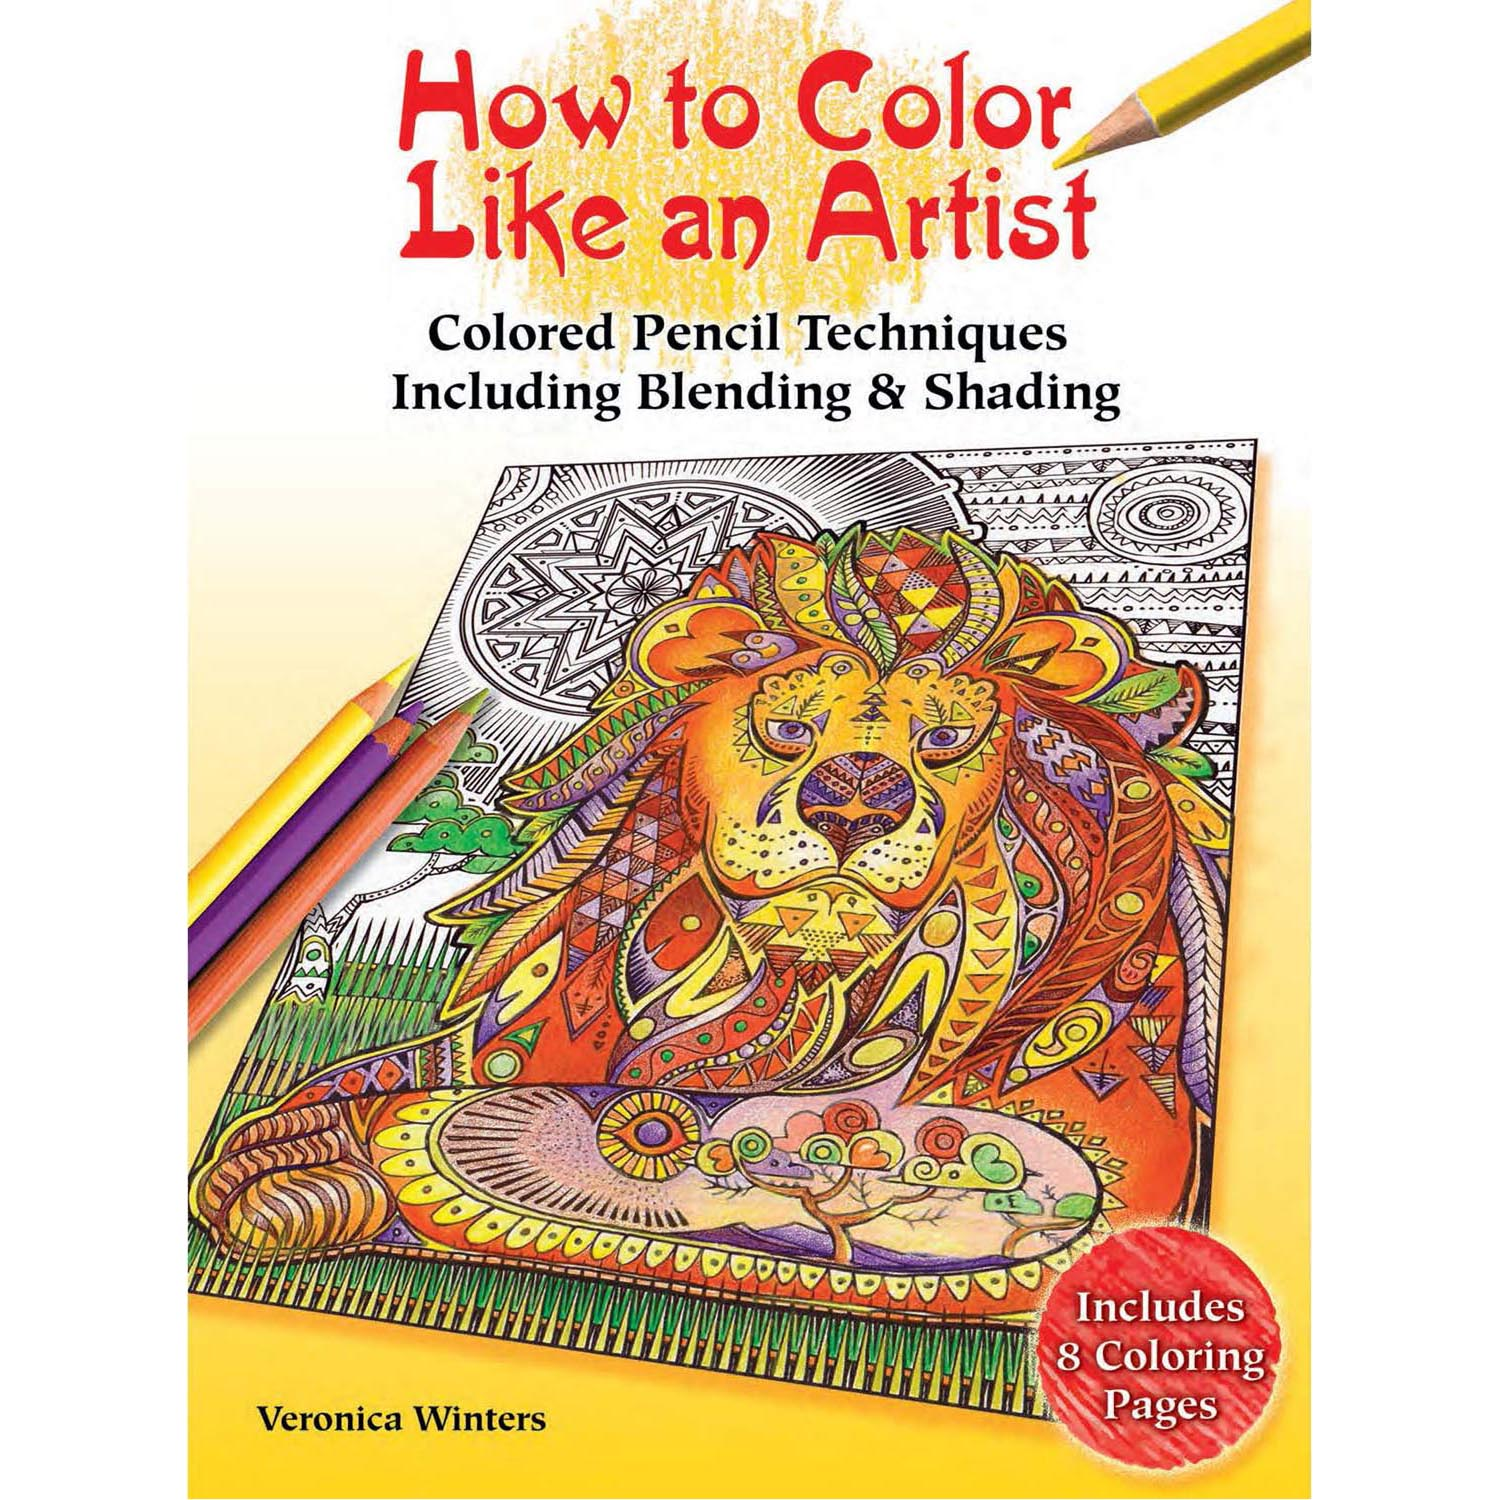 How To Color Like An Artist Colored Pencil Techniques